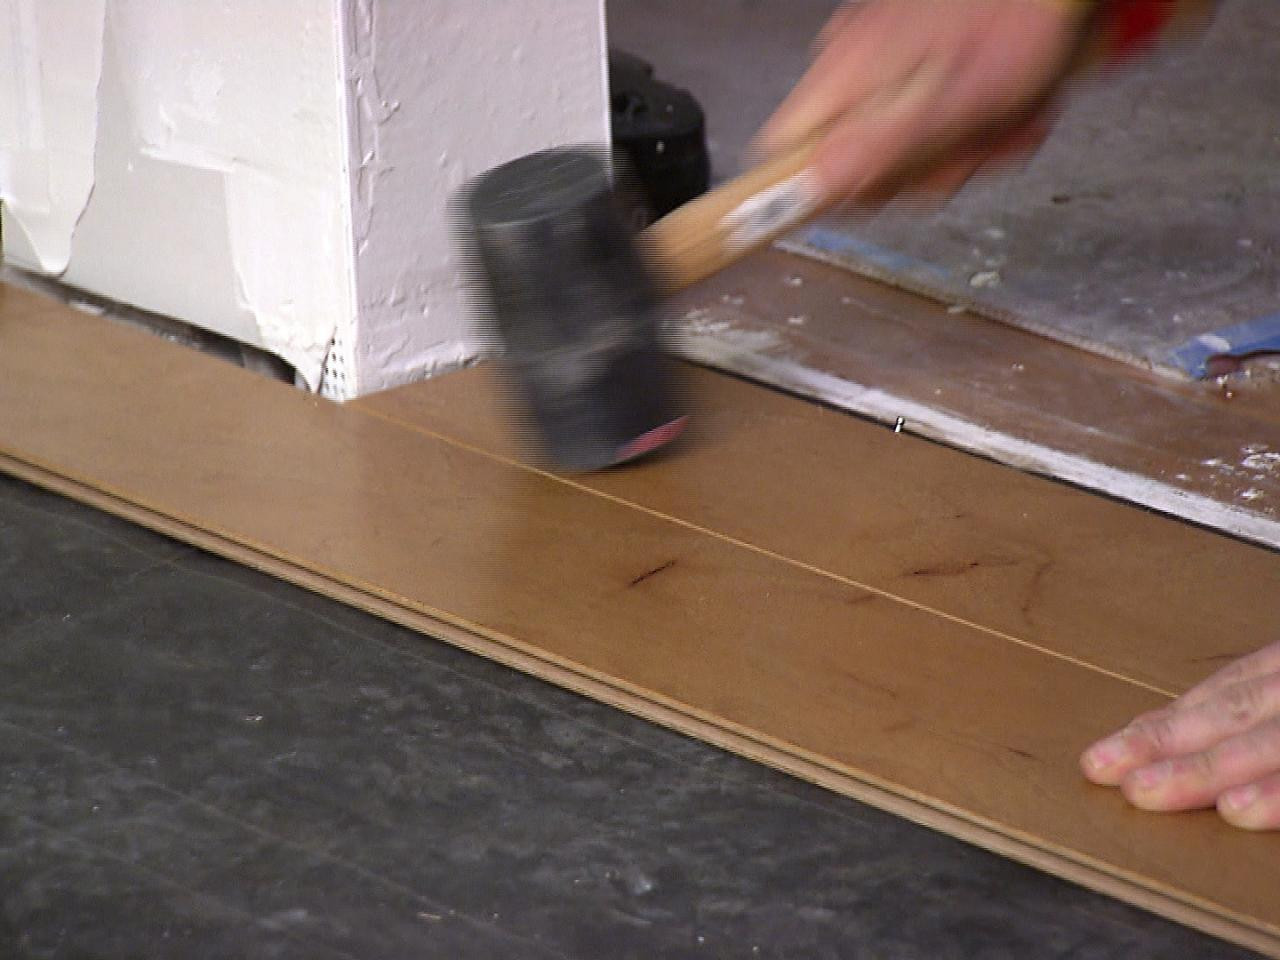 how do you install hardwood floors on a concrete slab of how to install ceramic tile on wooden floor tile design ideas for laying floor tiles on wooden how to install an engineered hardwood tos diy